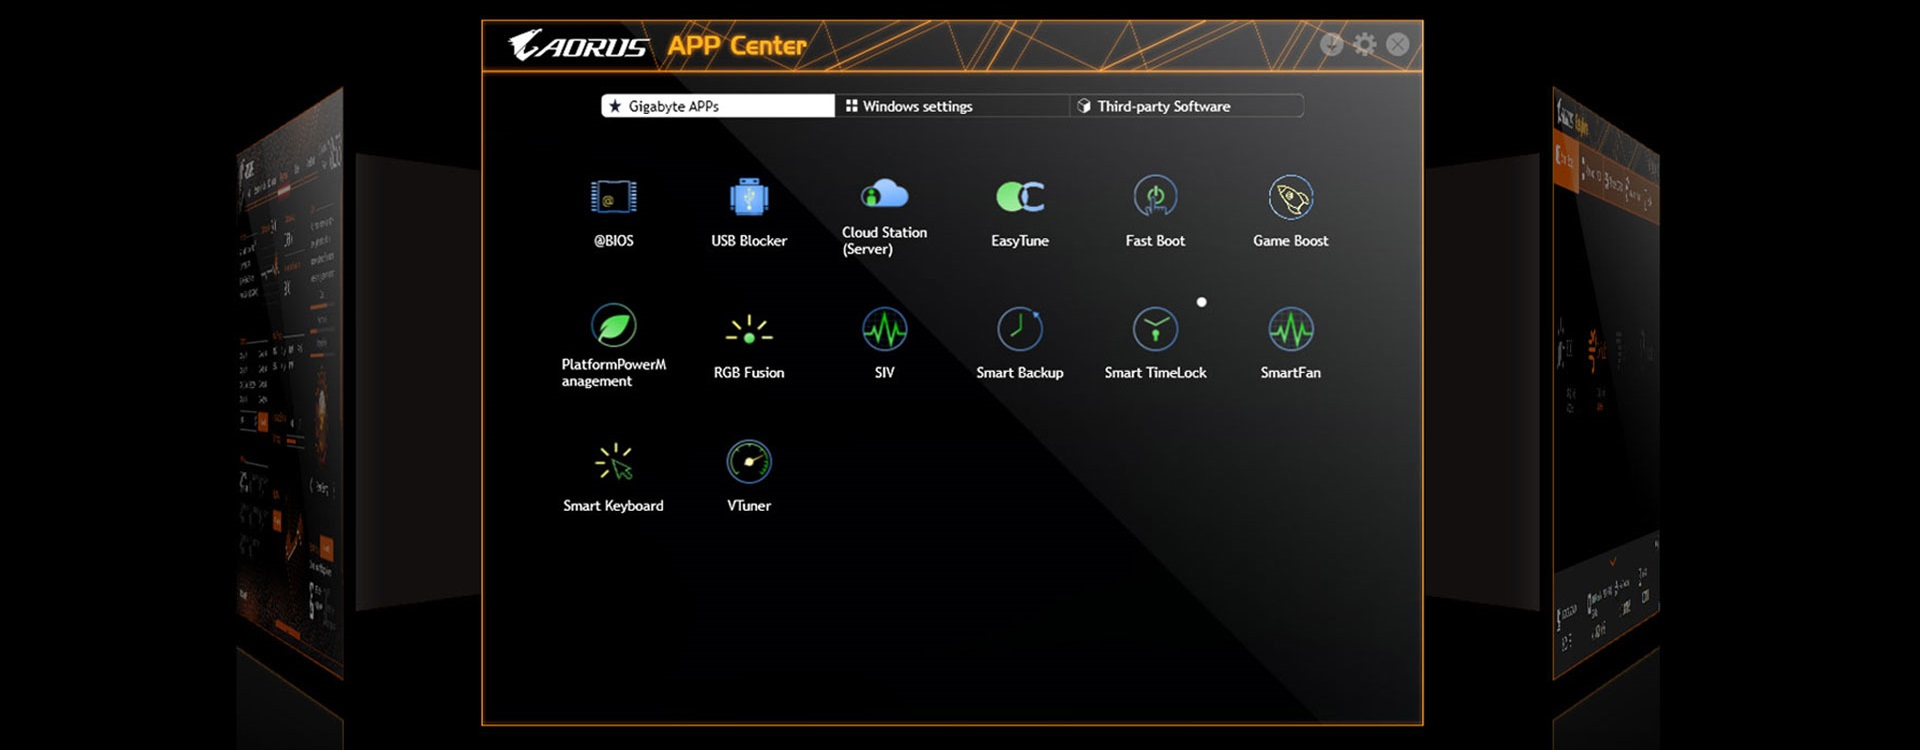 GIGABYTE Z390 AORUS XTREME LGA 1151 (Intel 8th and 9th Gen